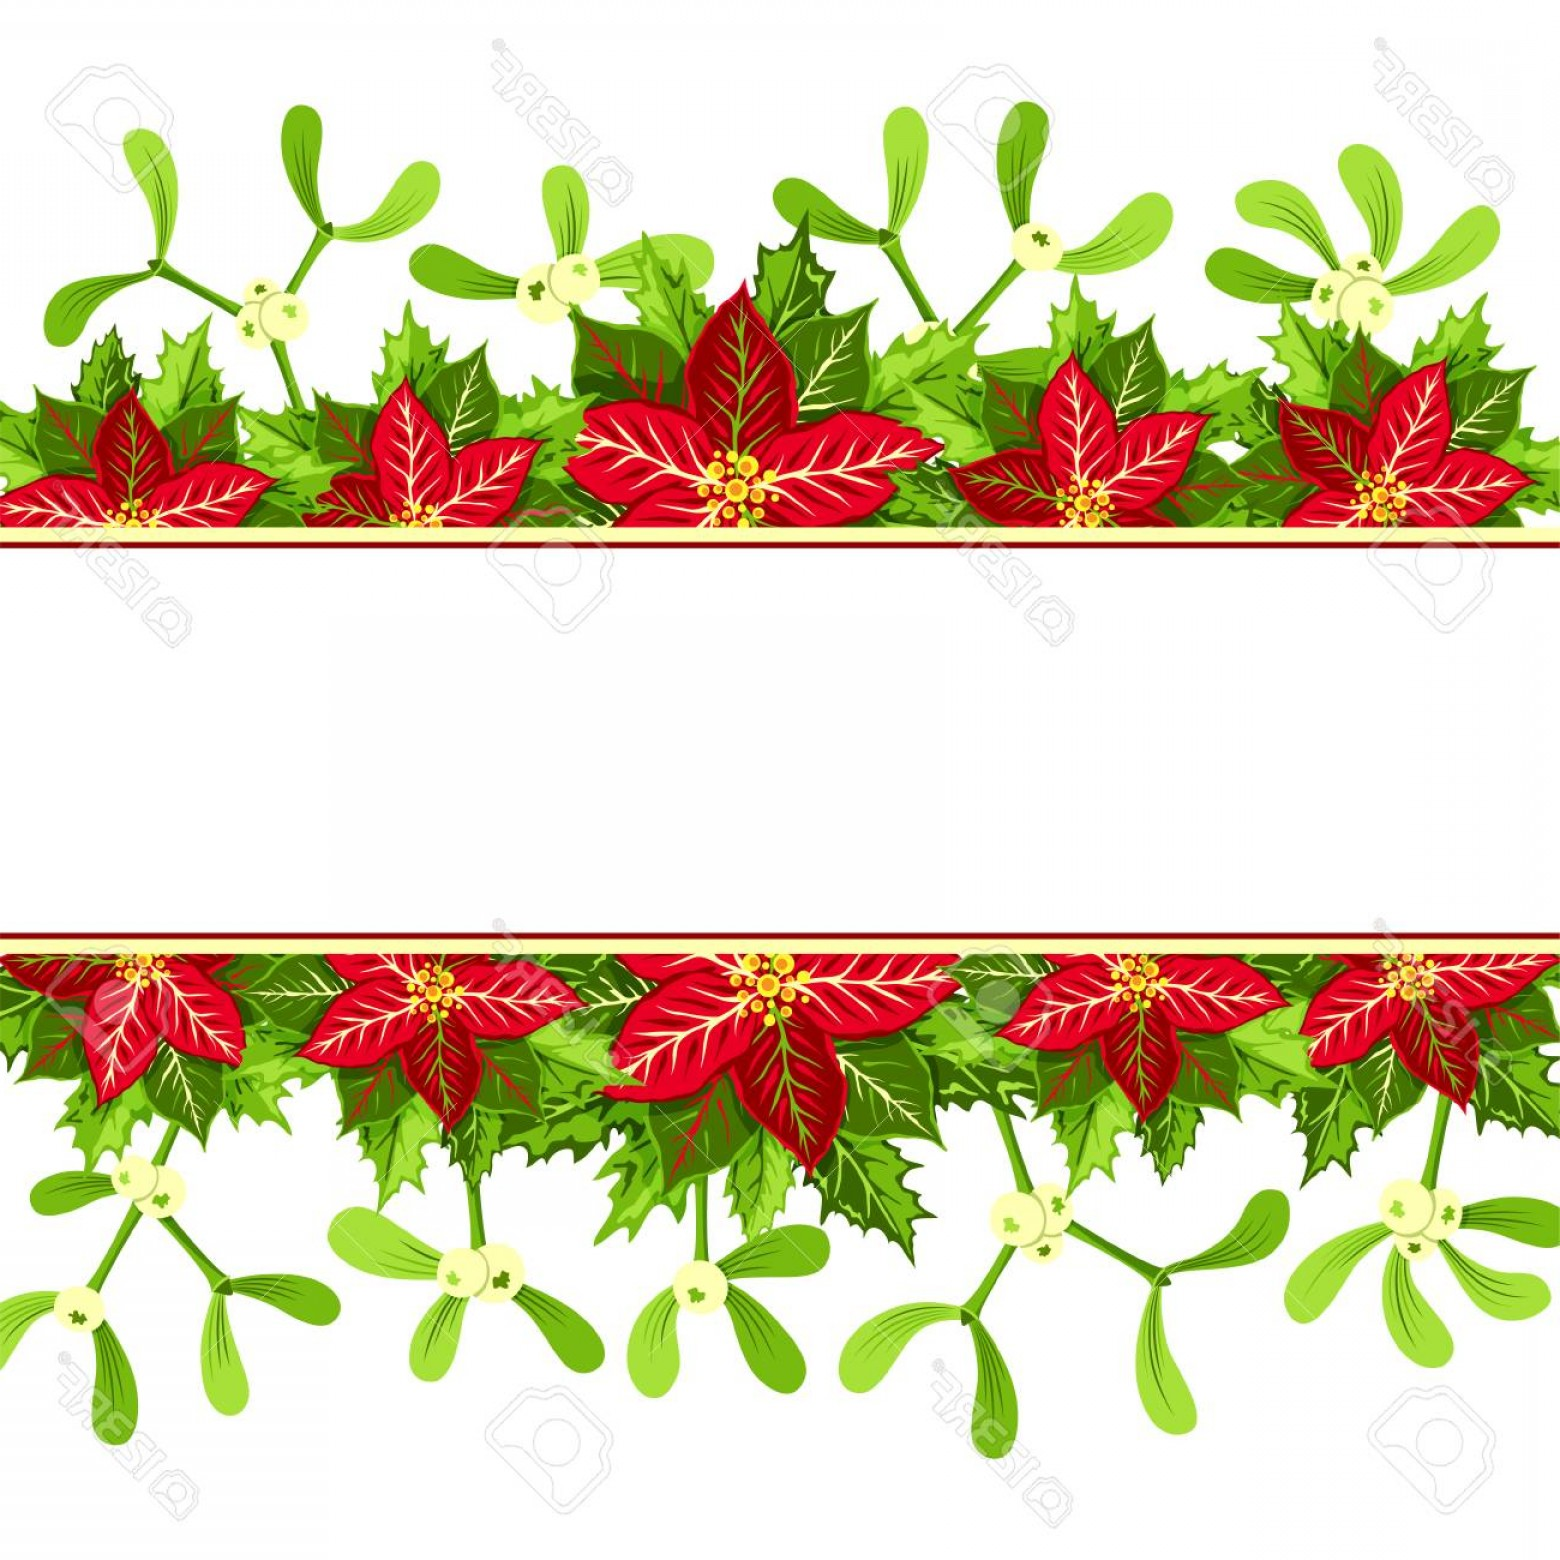 Christmas Horizontal Vector: Photostock Vector Christmas Background With Red Poinsettia Mistletoe And Holly Leaves Decoration Elements Horizontal B